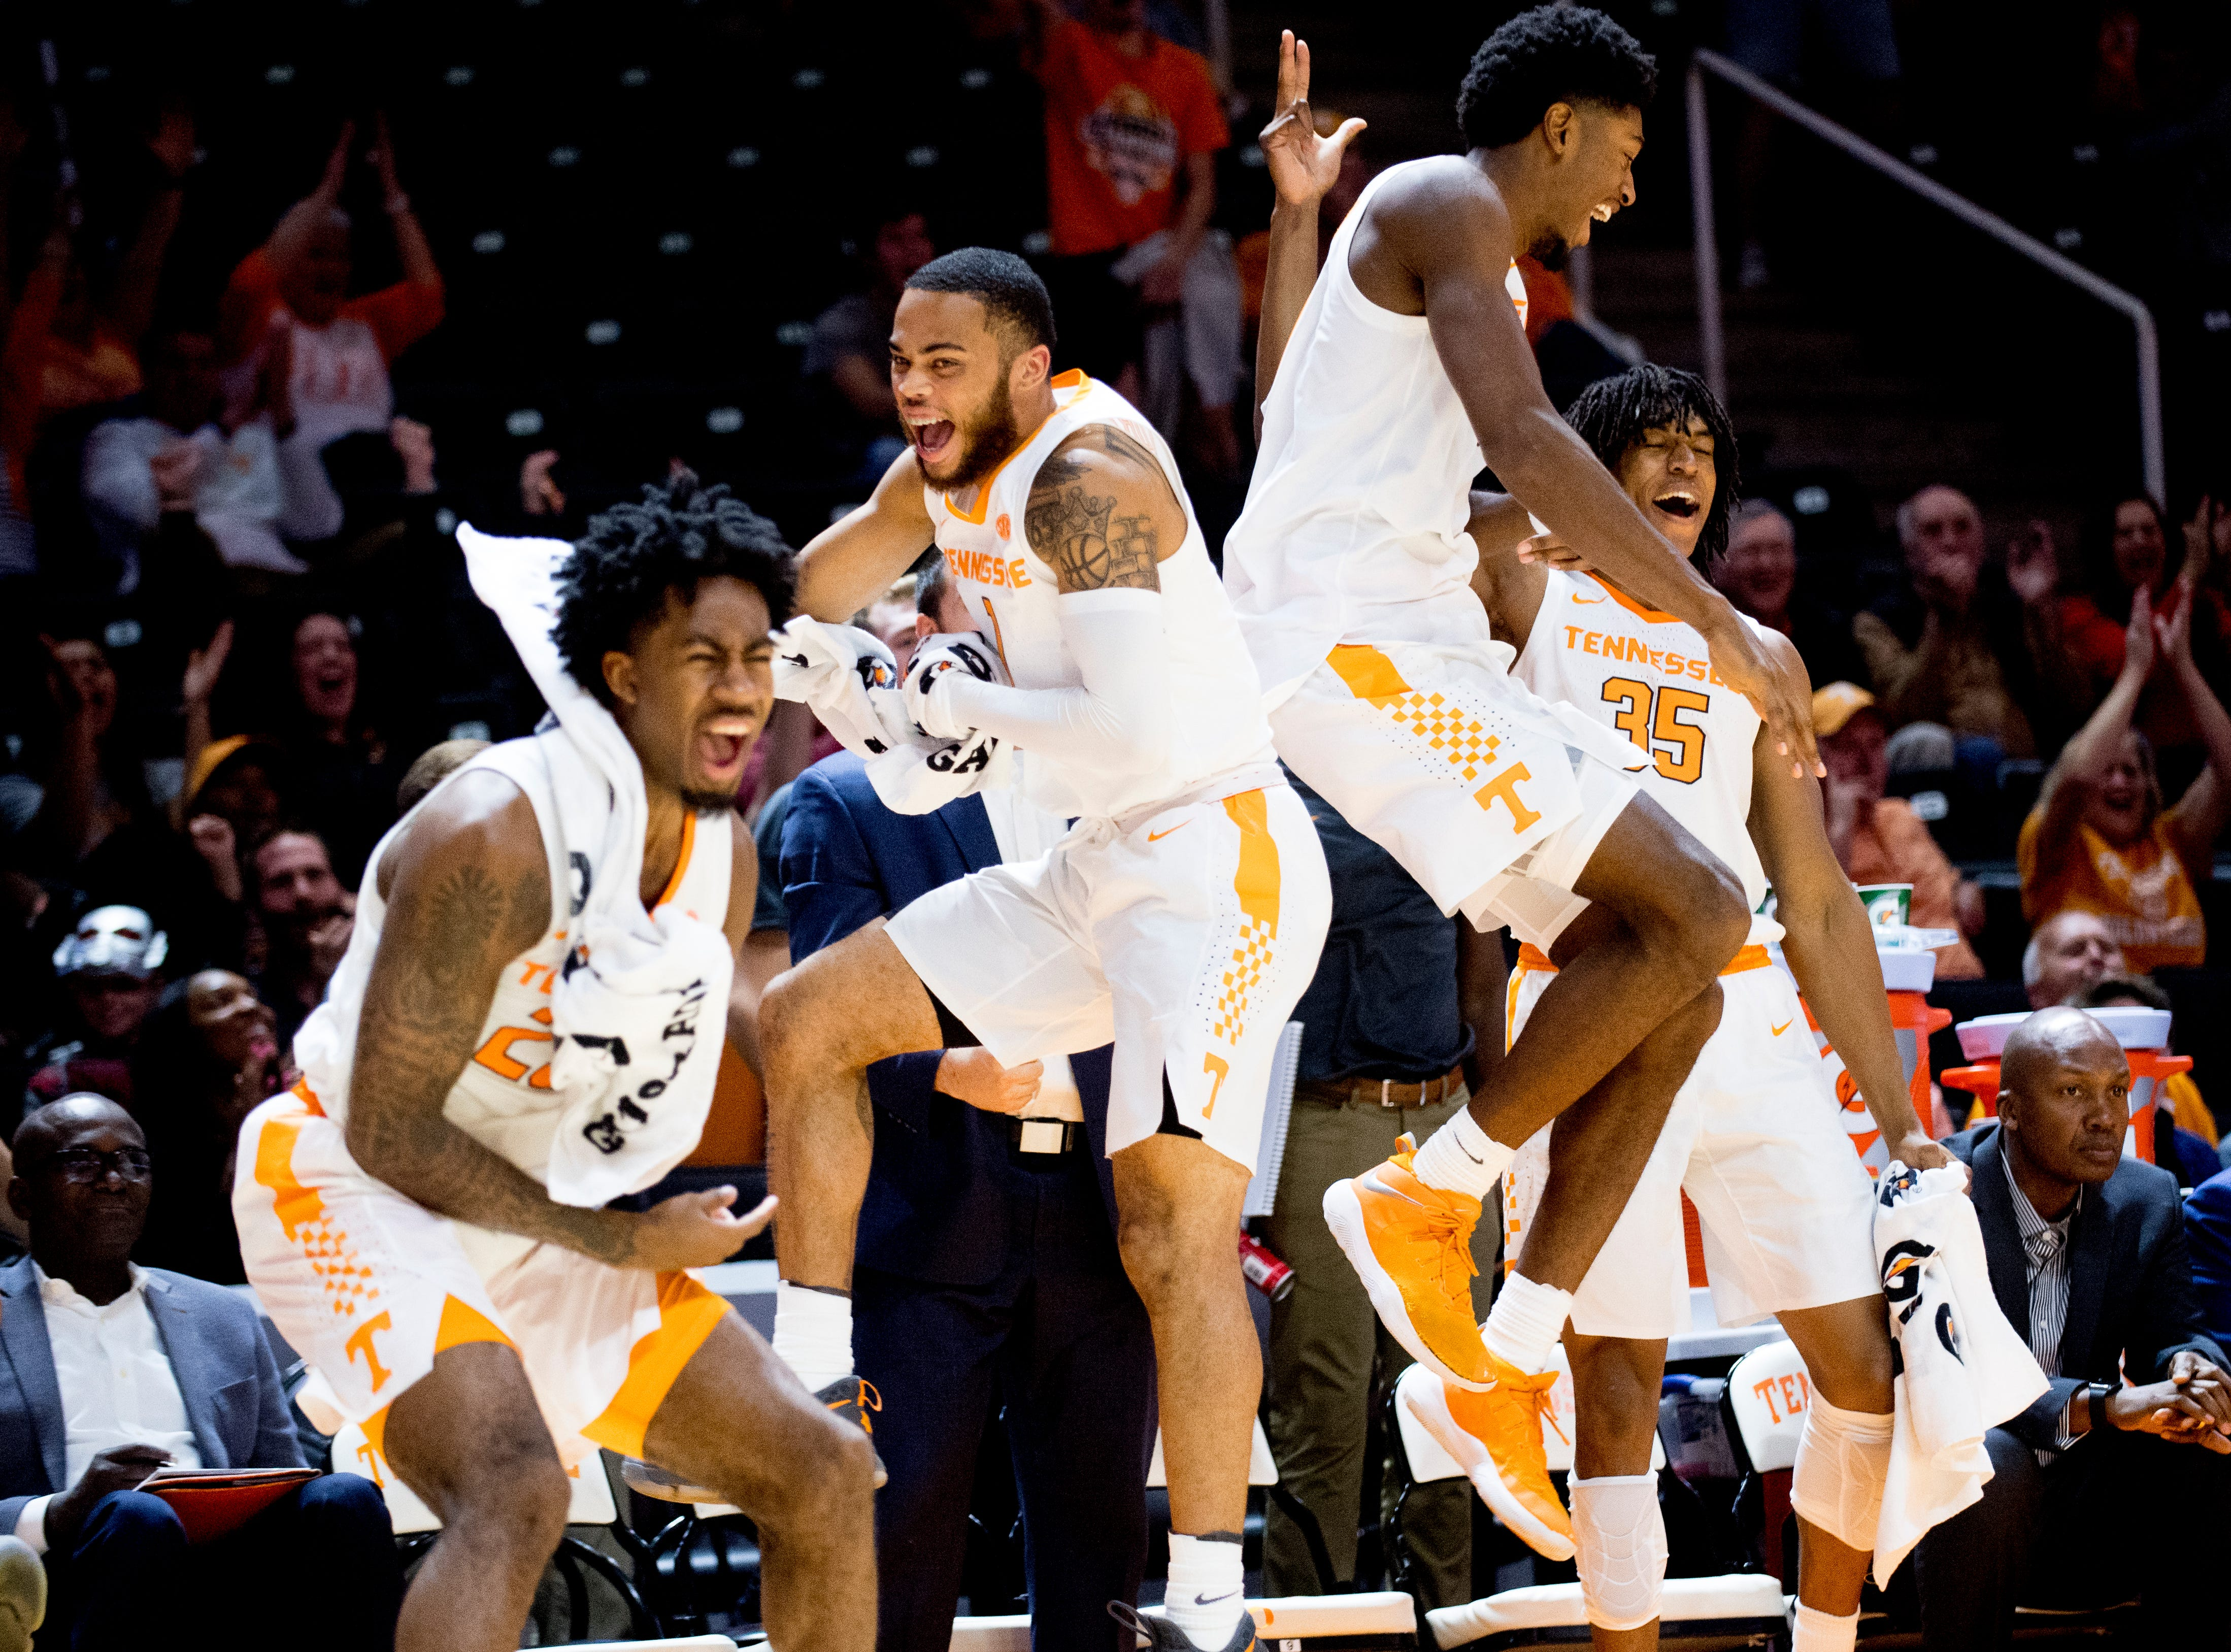 Tennessee guard Lamonte Turner (1) and Tennessee forward Kyle Alexander (11) celebrate mid-air after a point during a game between Tennessee and Tusculum at Thompson-Boling Arena in Knoxville, Tennessee on Wednesday, October 31, 2018.